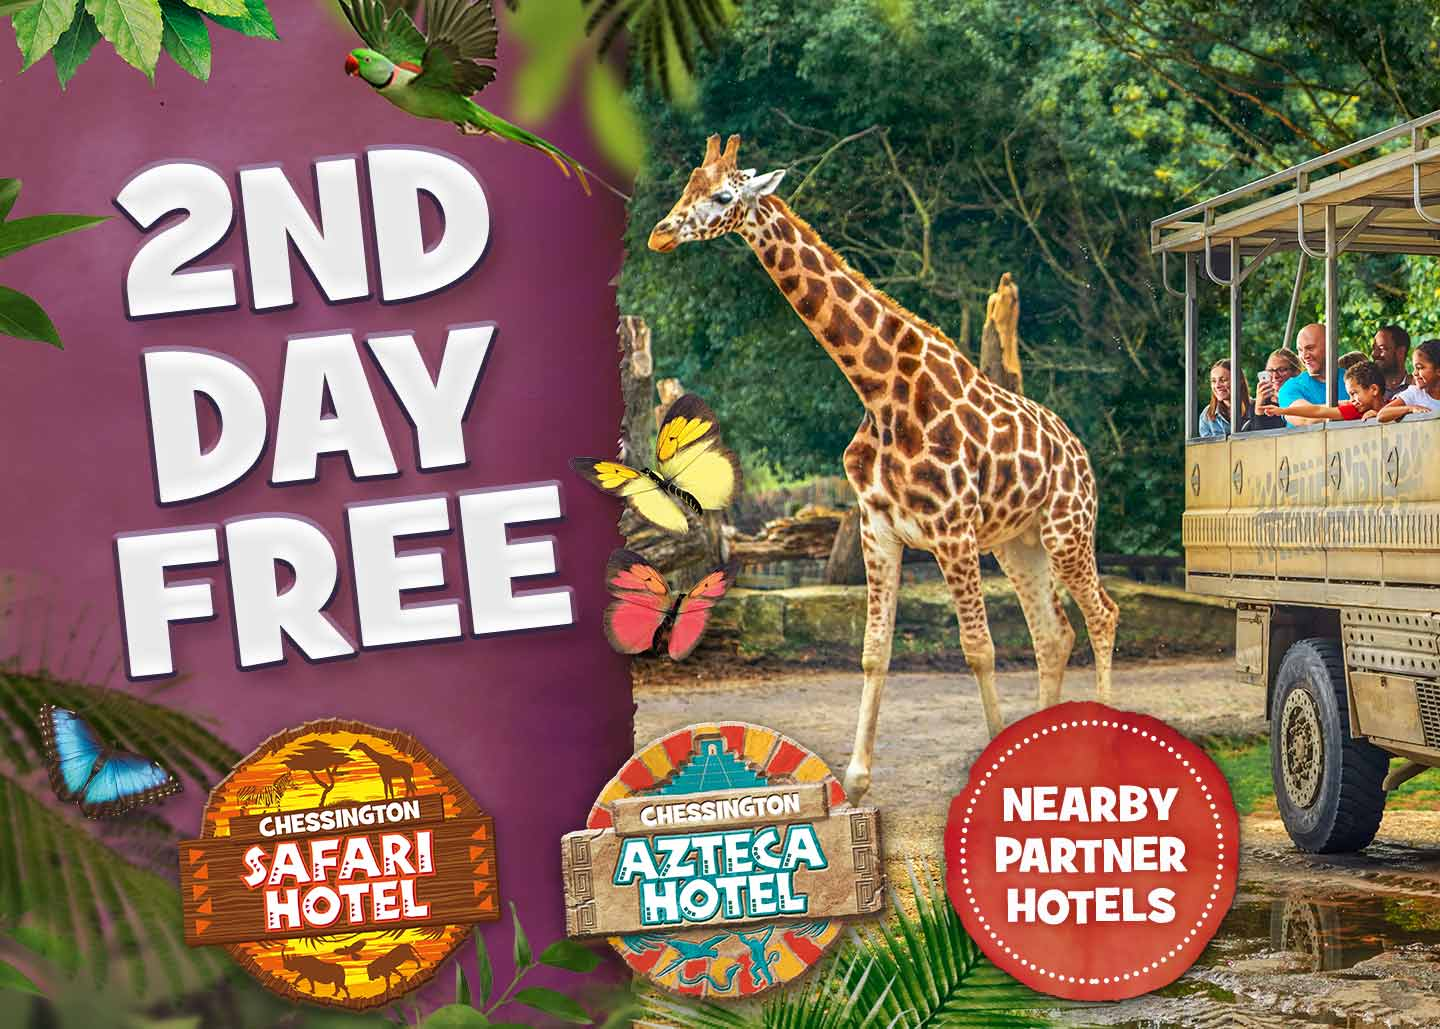 2nd Day FREE at Chessington Resort